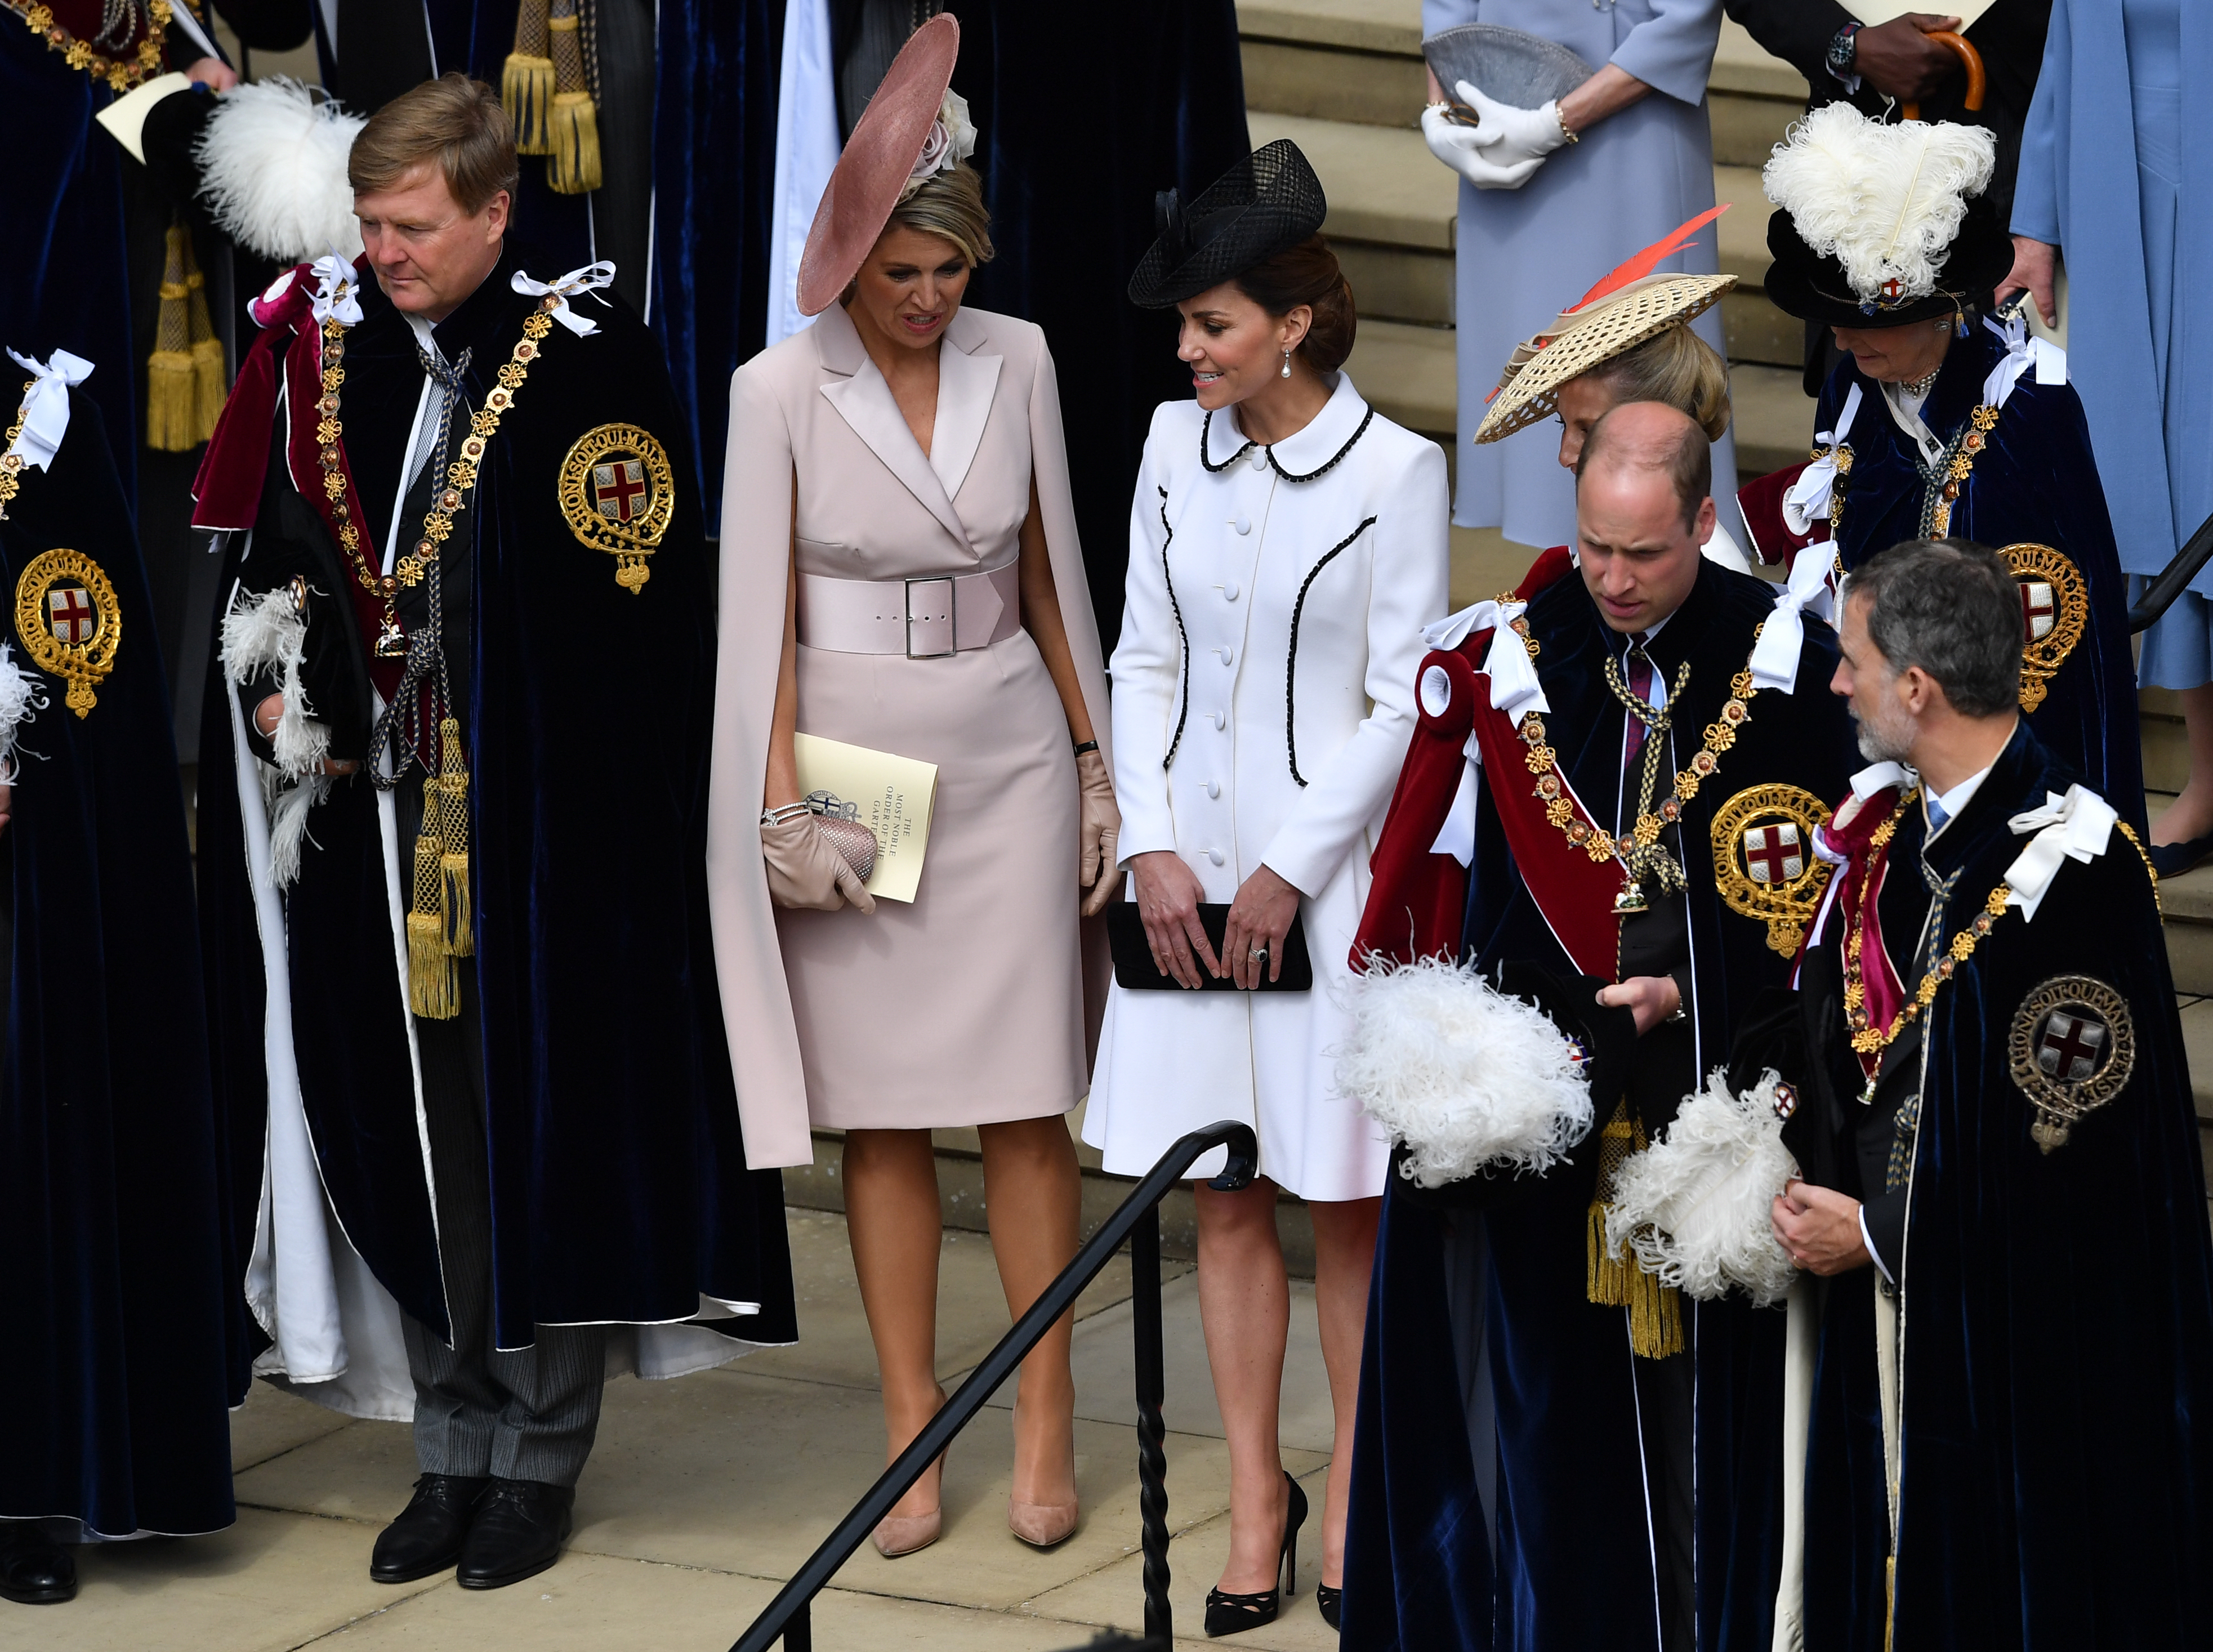 King Willem-Alexander of the Netherlands (L), Queen Maxima of the Netherlands (2L), Catherine, Duchess of Cambridge (C) Prince William, Duke of Cambridge (3R) and King Felipe of Spain (R) wait as Queen Elizabeth II leaves the Order of the Garter Service on June 17, 2019 in Windsor, England. The Order of the Garter is the senior and oldest British Order of Chivalry, founded by Edward III in 1348. The Garter ceremonial dates from 1948, when formal installation was revived by King George VI for the first time since 1805. (Photo by Ben Stansall - WPA Pool/Getty Images)